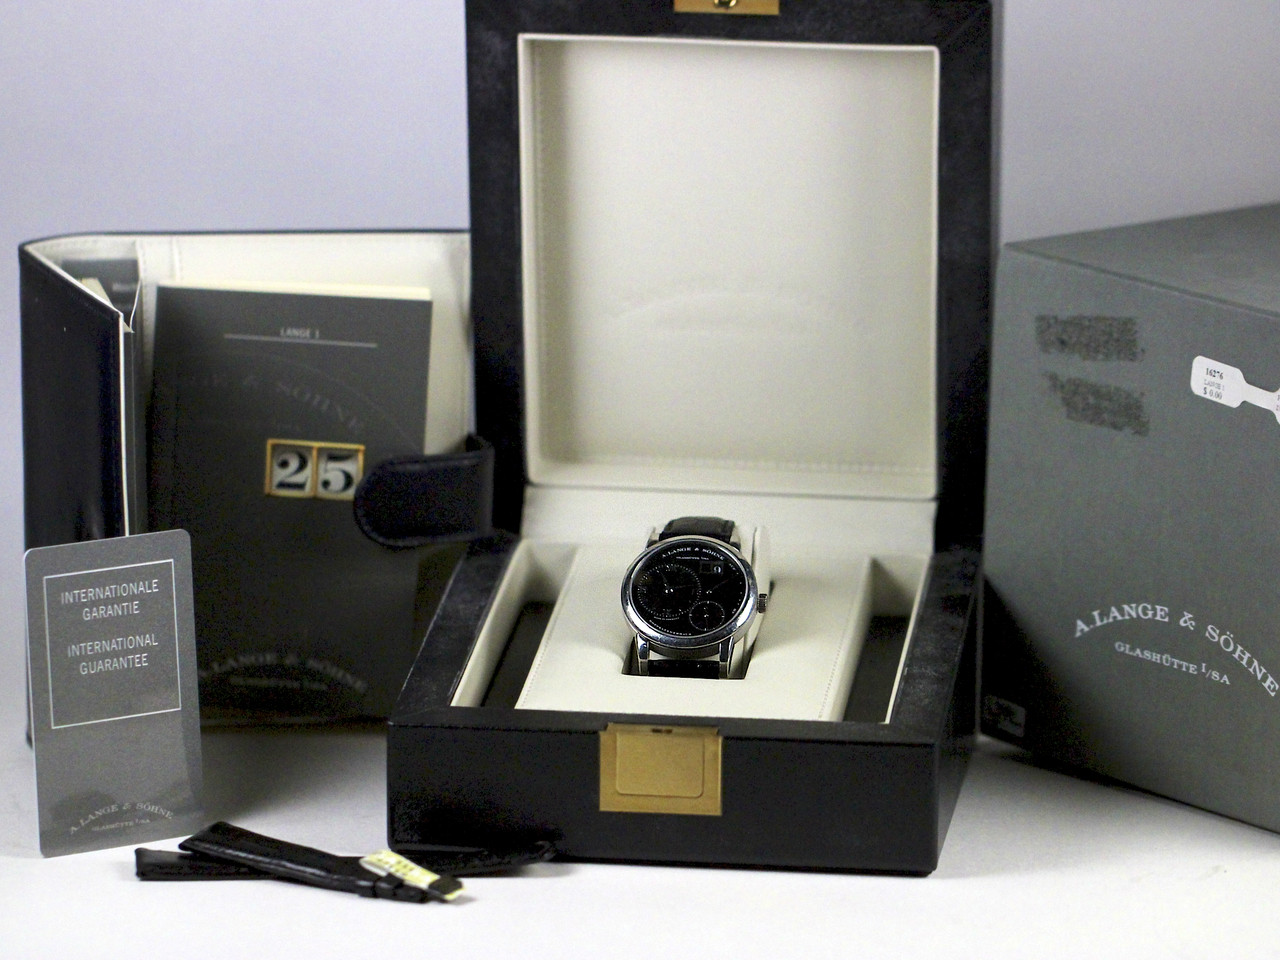 Complete with Double Box & Paperwork, New Black Leather strap - A Lange & Sohne Watch - Lange 1 Black Darth Dial 101.035 pre-owned for sale Legend of Time - Chicago Watch Center